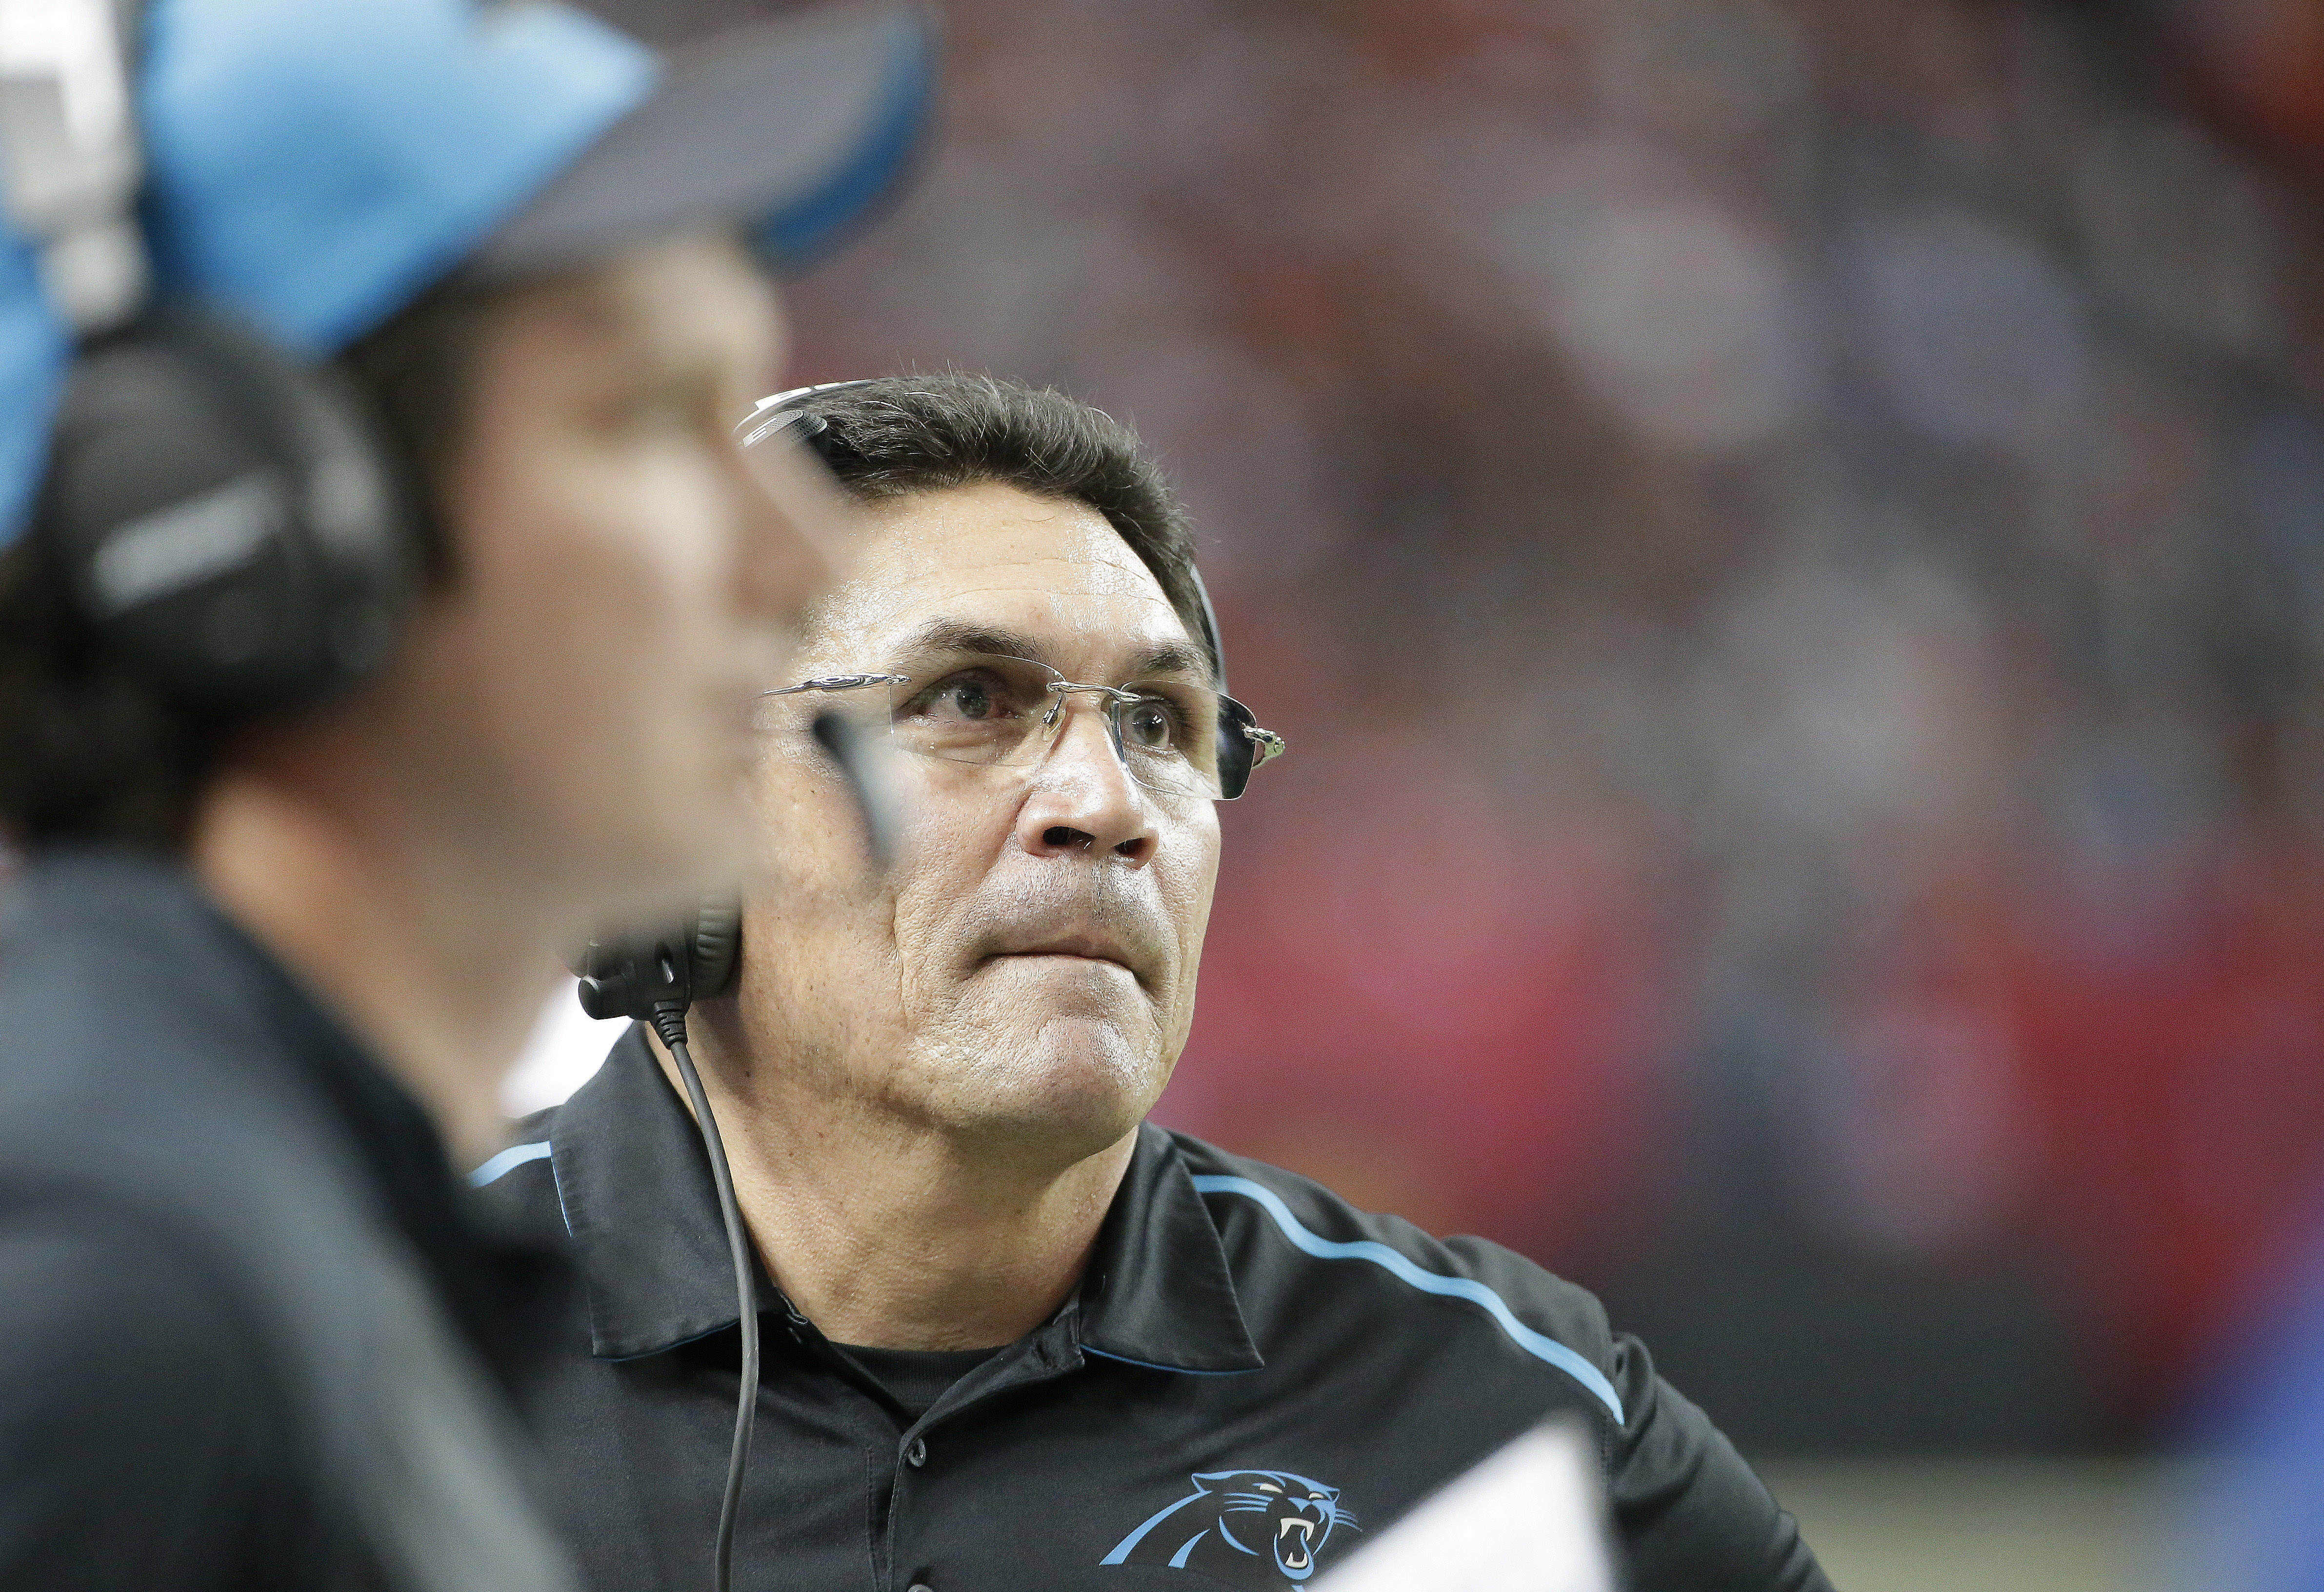 FILE - In this Sunday, Dec. 27, 2015, file photo, Carolina Panthers head coach Ron Rivera watches his team play against the Atlanta Falcons during the first half of an NFL football game in Atlanta. Rivera, who is 18-4 in December games, said he believes h